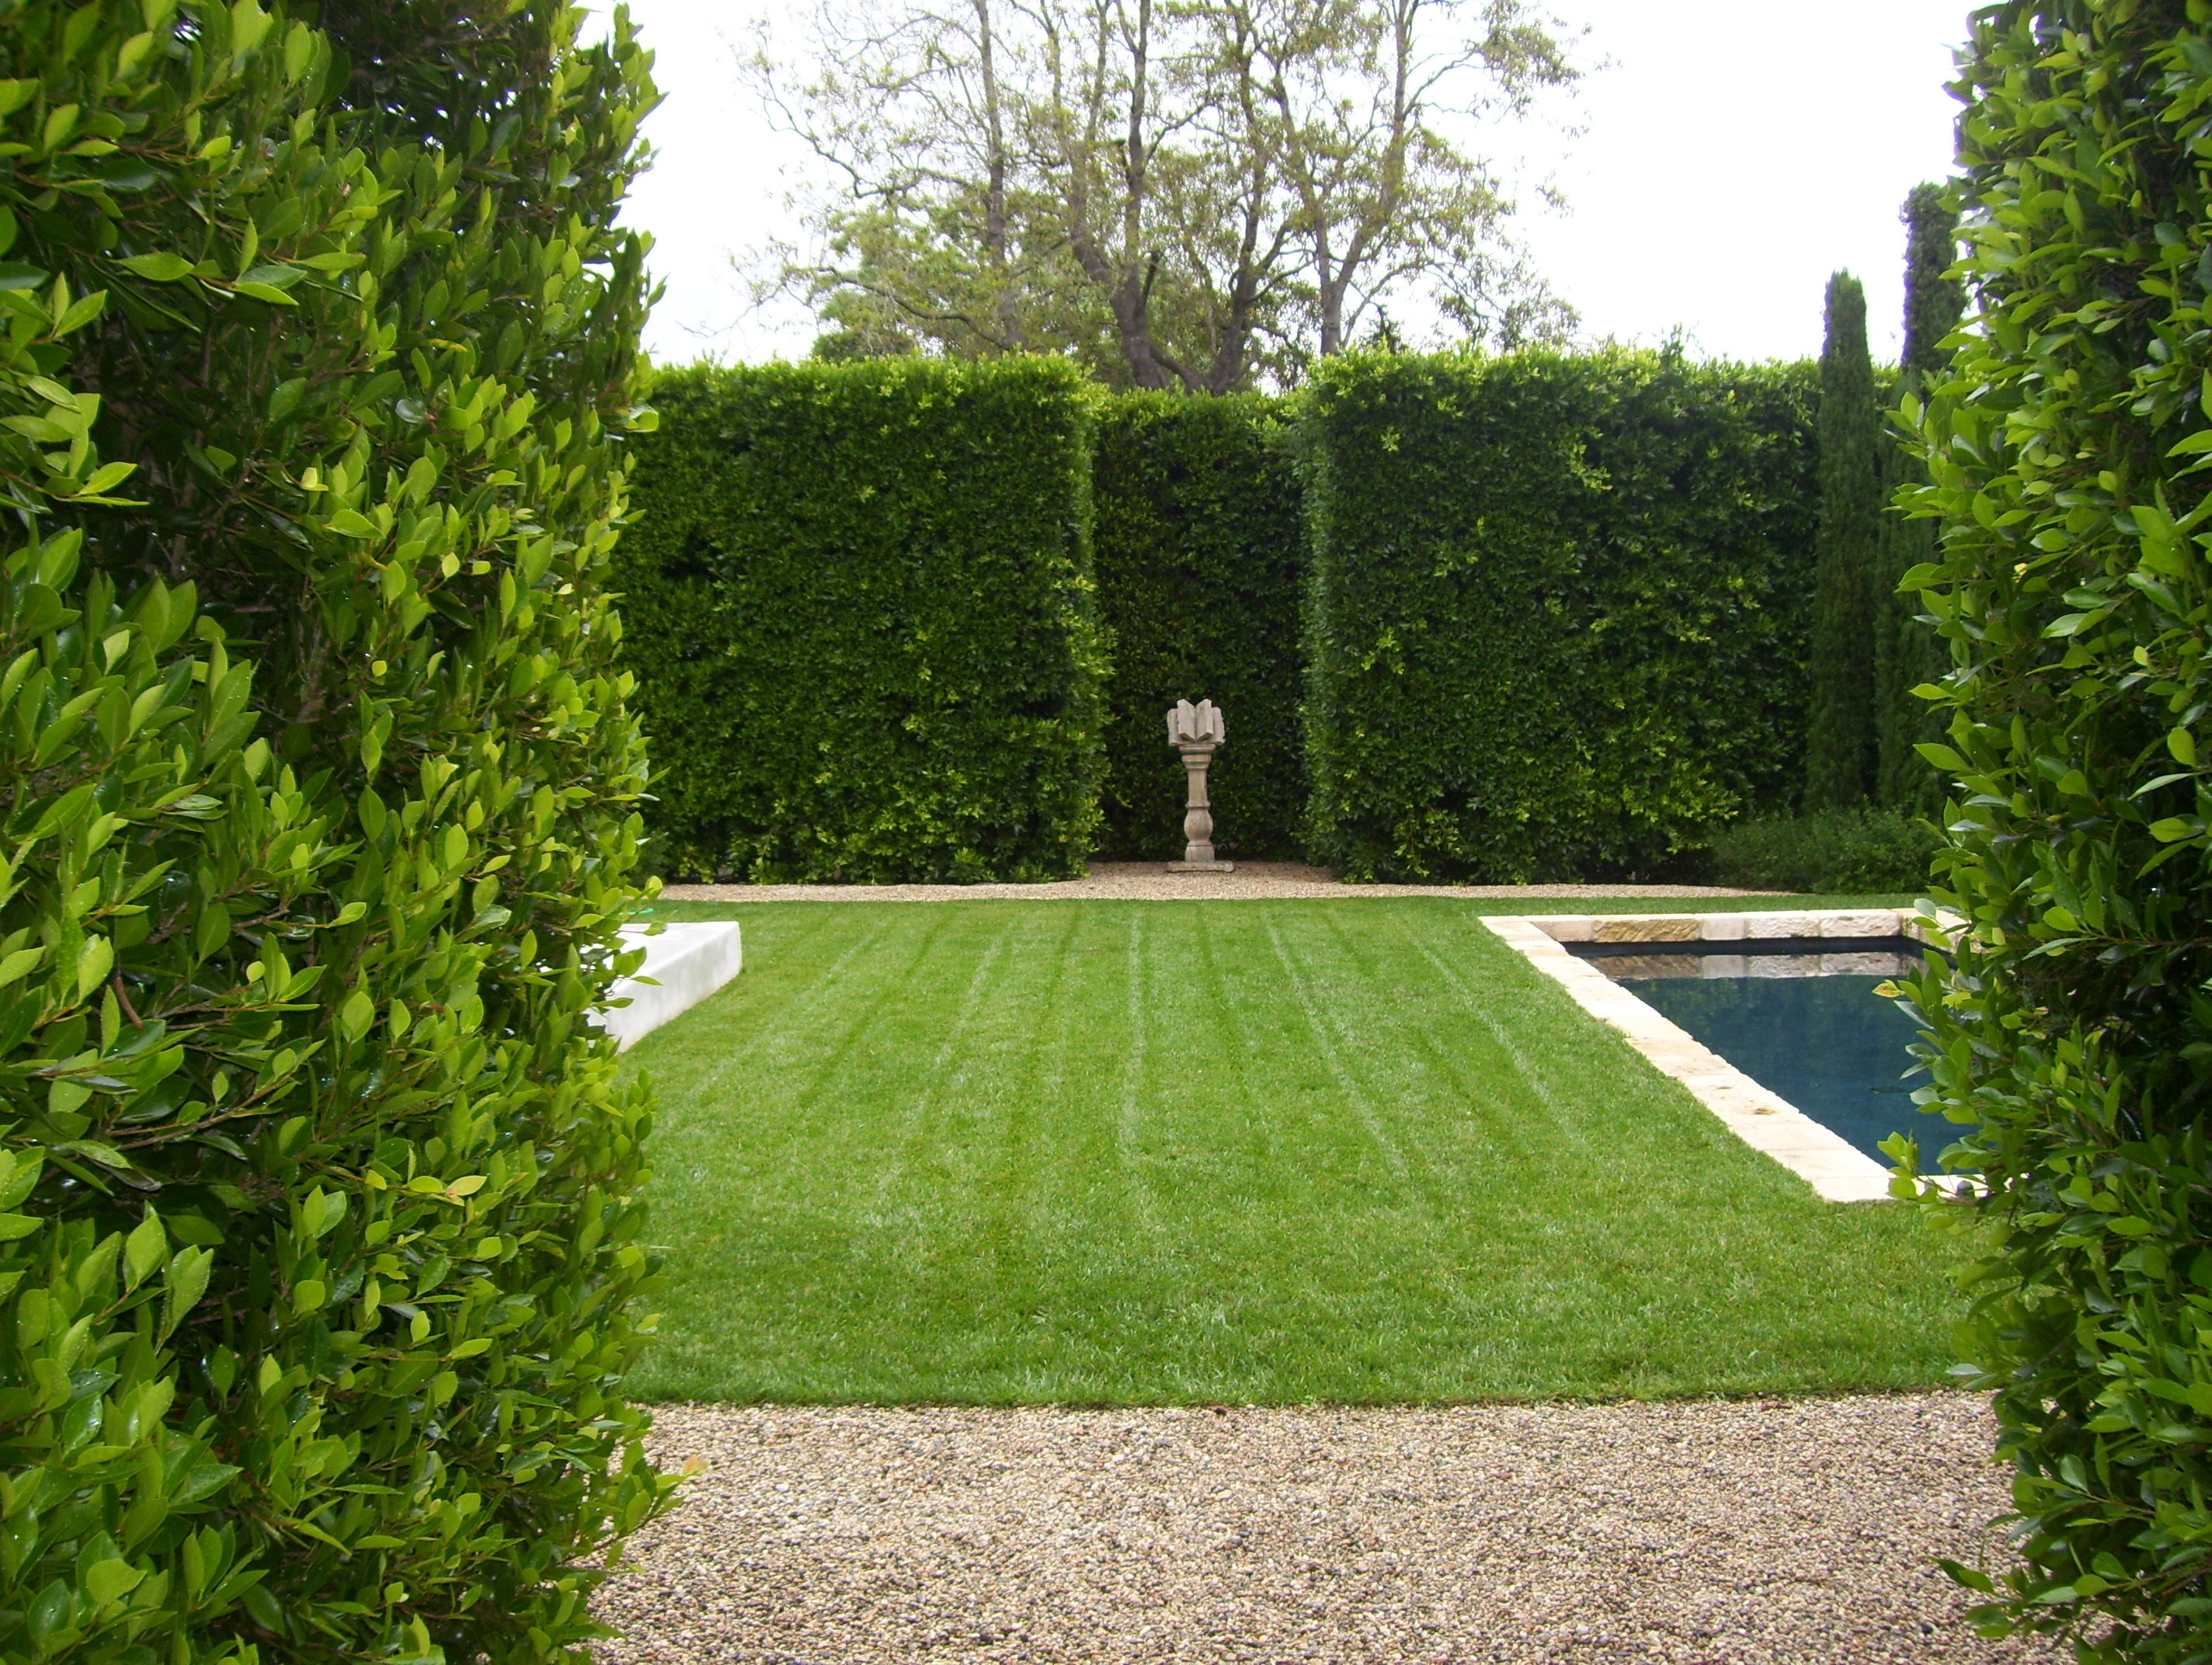 Speciality landscaping landscaping ideas santa barbara Pictures of landscaping ideas